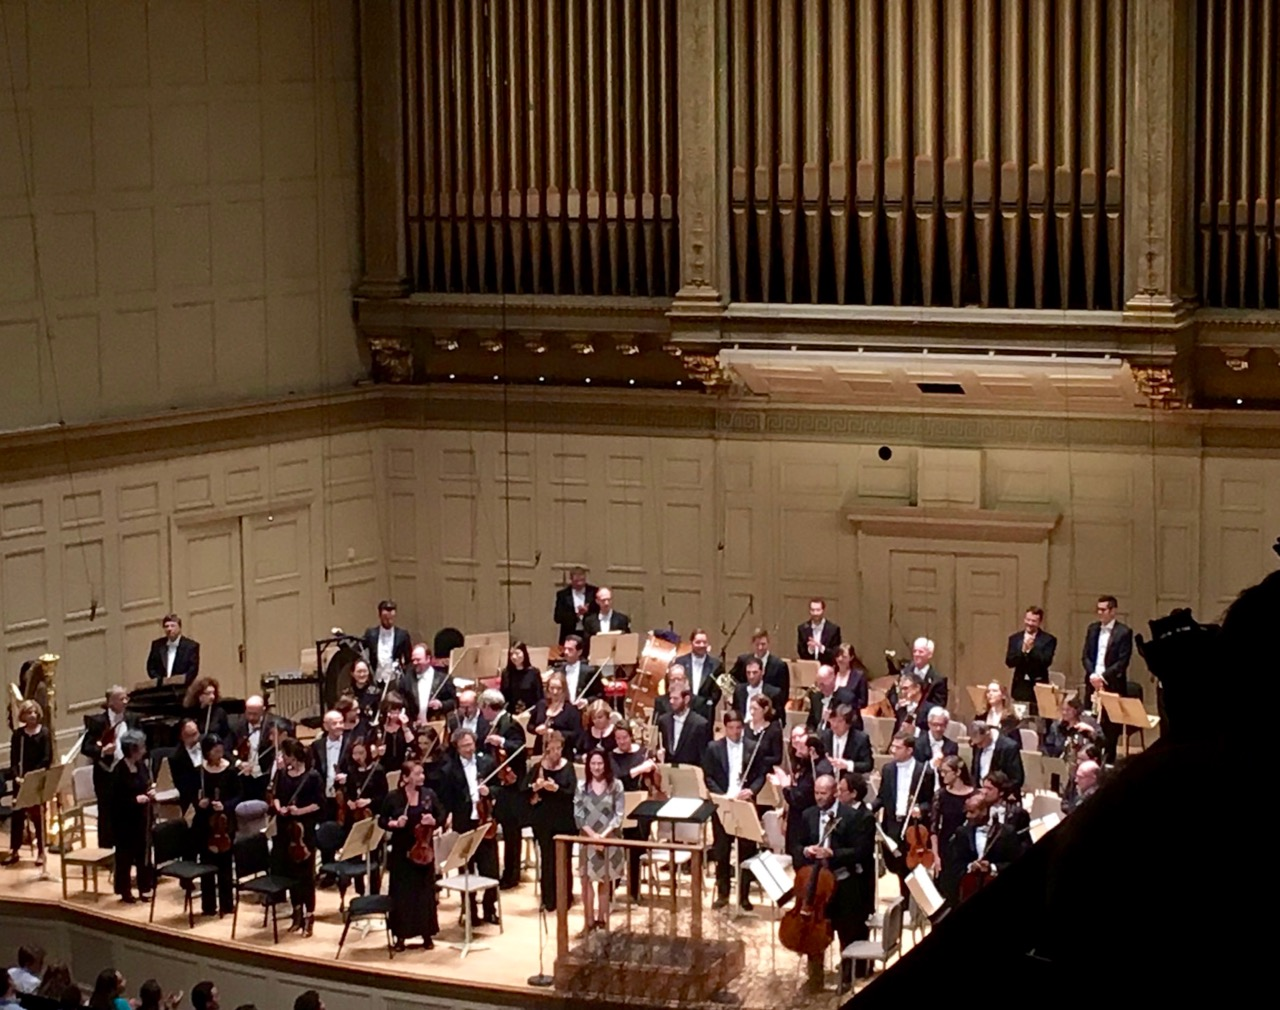 Arlene Sierra at a performance of 'Moler' with the Boston Symphony Orchestra, Andris Nelsons cond.